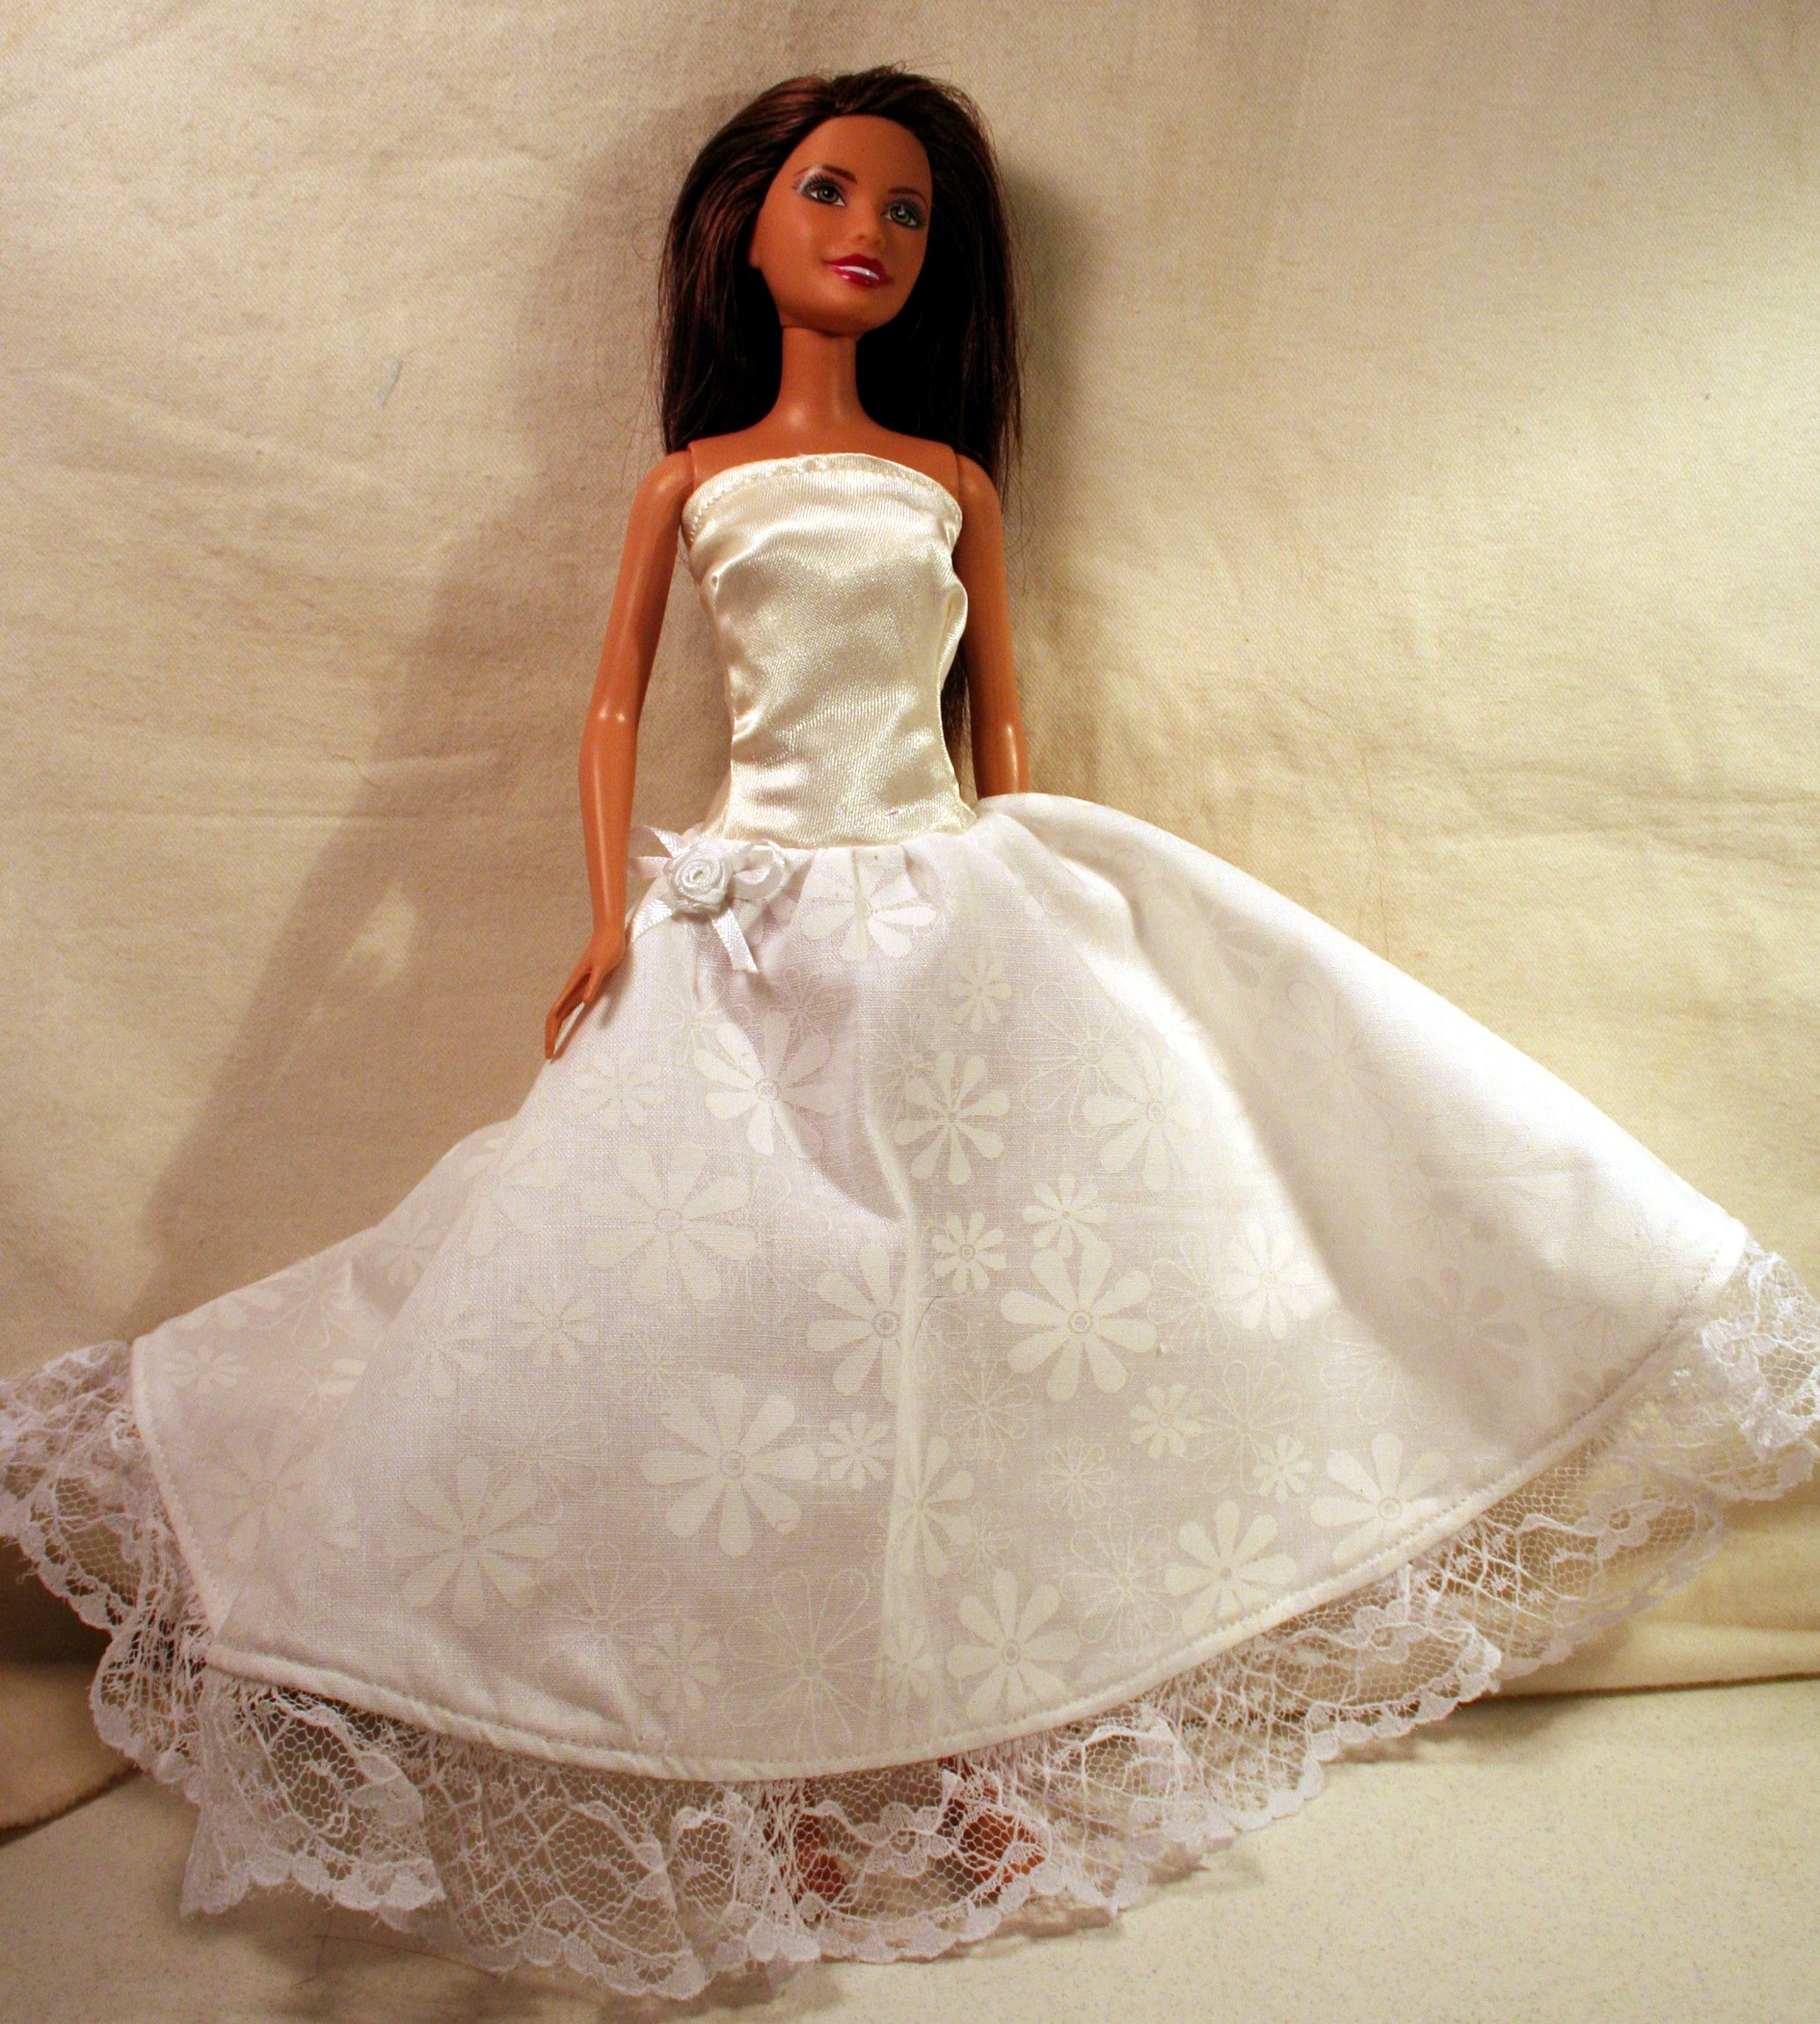 barbie wedding dress Repin By Pinterest for iPad